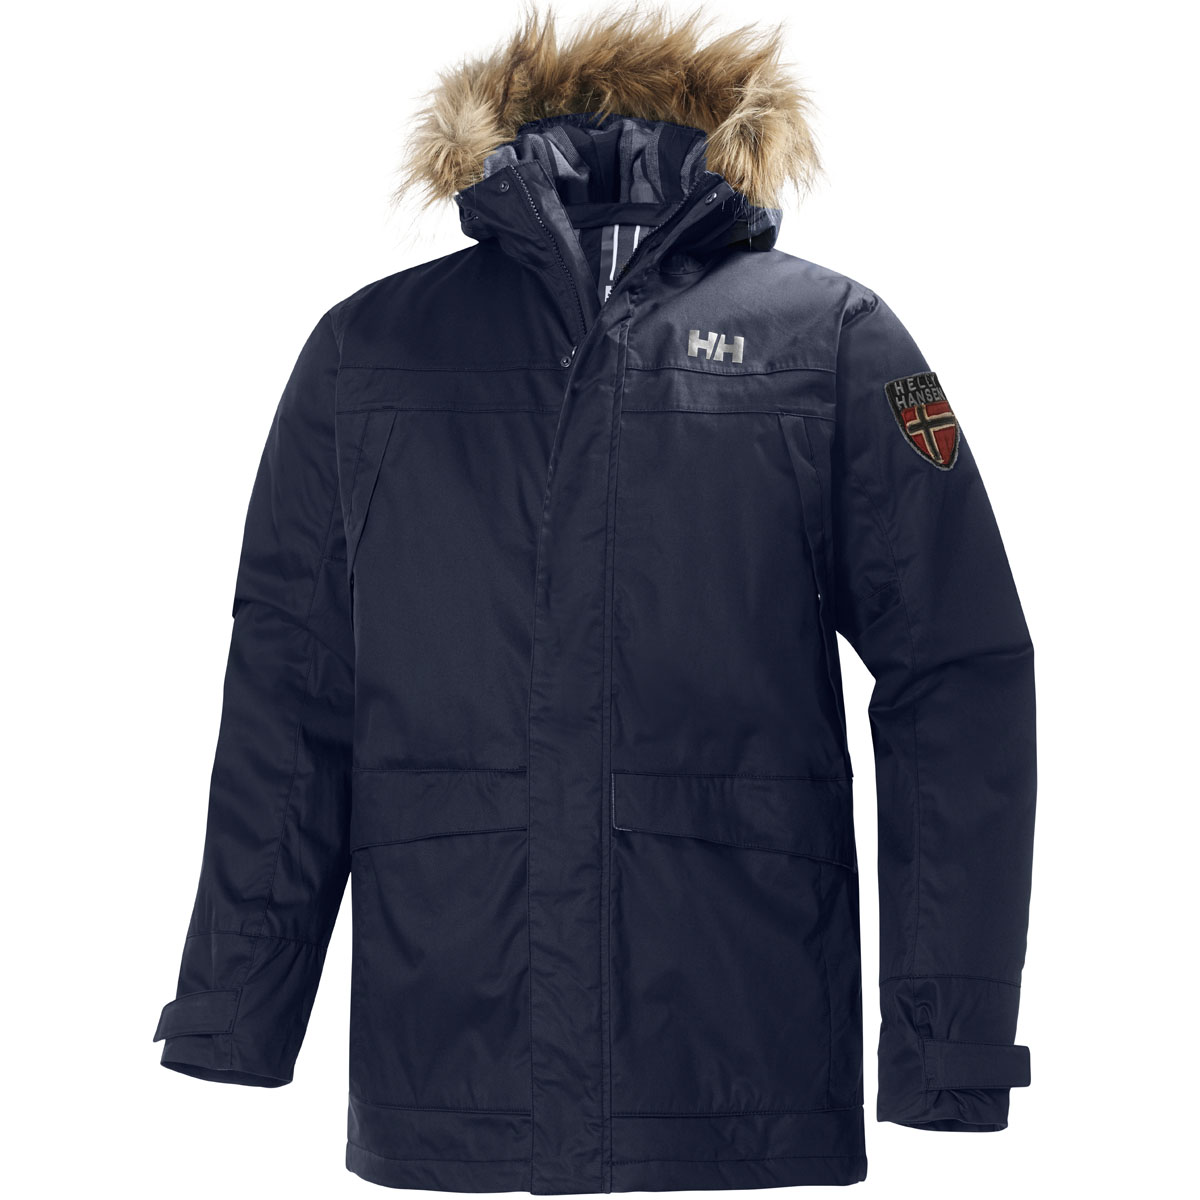 helly hansen mens coastline parka insulated jacket winter thermal hood coat ebay. Black Bedroom Furniture Sets. Home Design Ideas